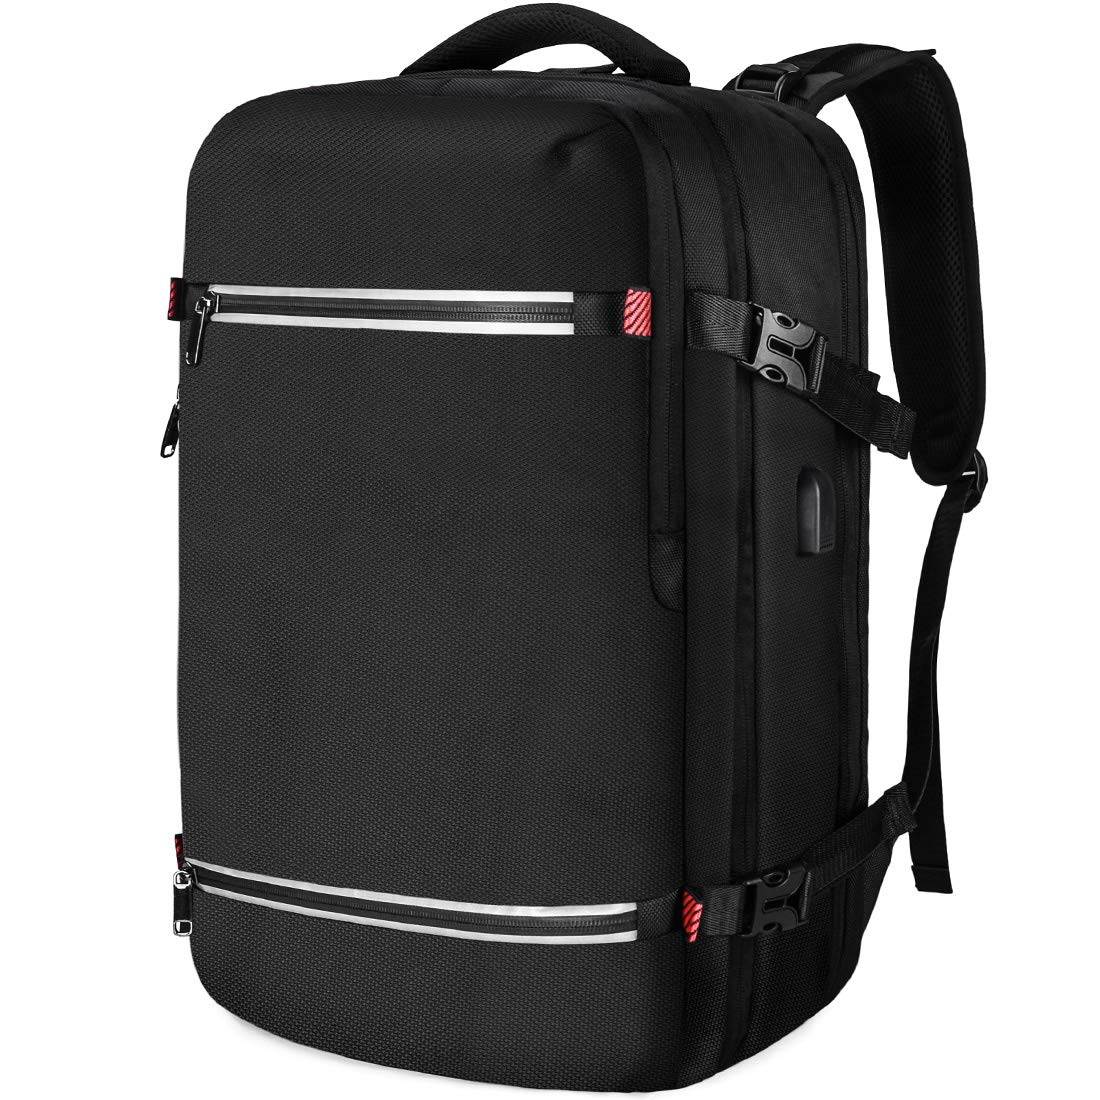 6c9d1eeac00 NUBILY Laptop Backpack 17.3 Inch Water Resistant Business USB Charging Port  Computer Rucksack 17 Inch Travel Camping School Work Office for Men Black:  ...